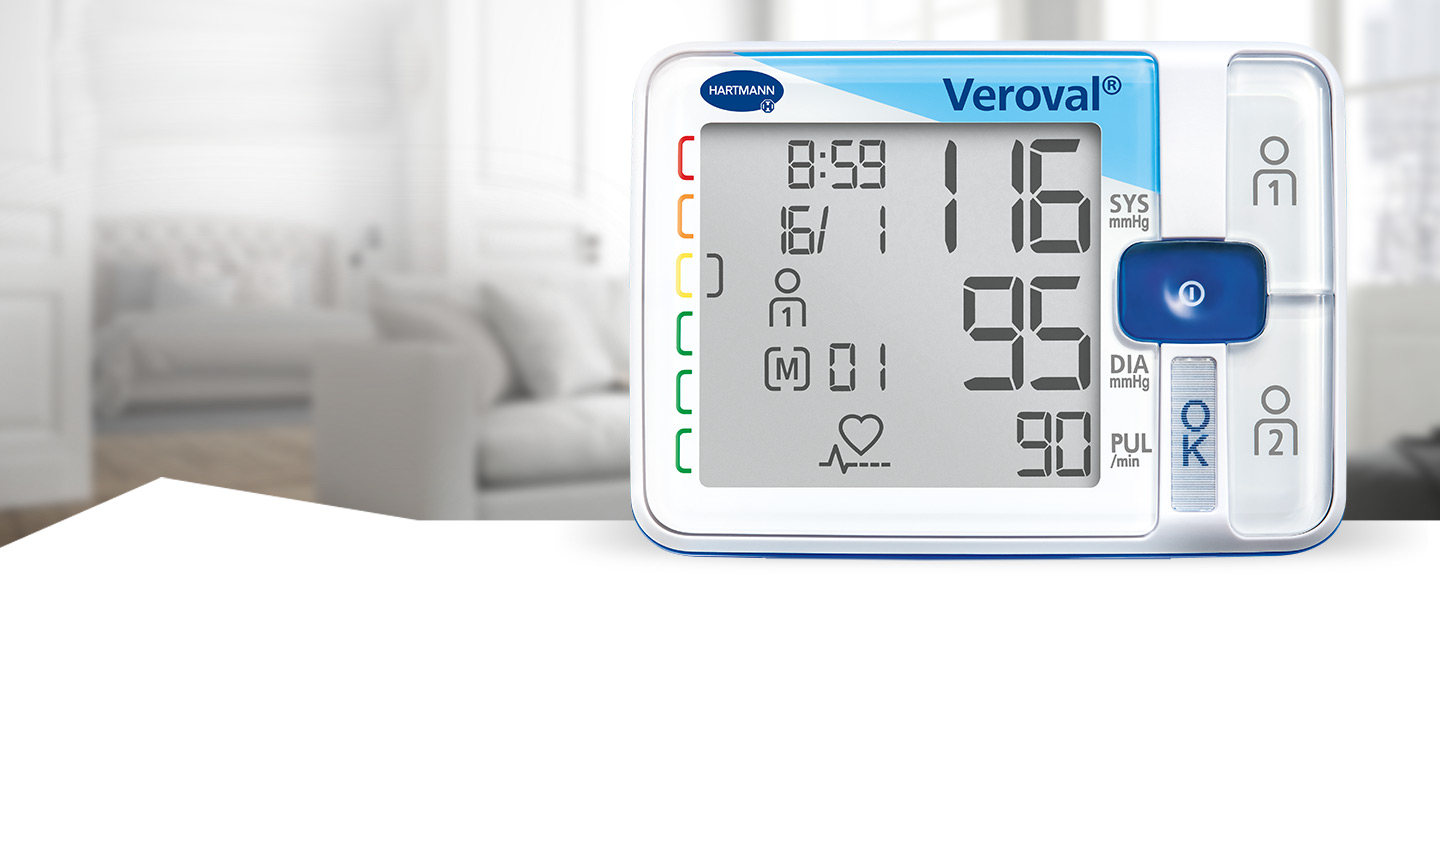 Veroval® blood pressure monitor for wrist